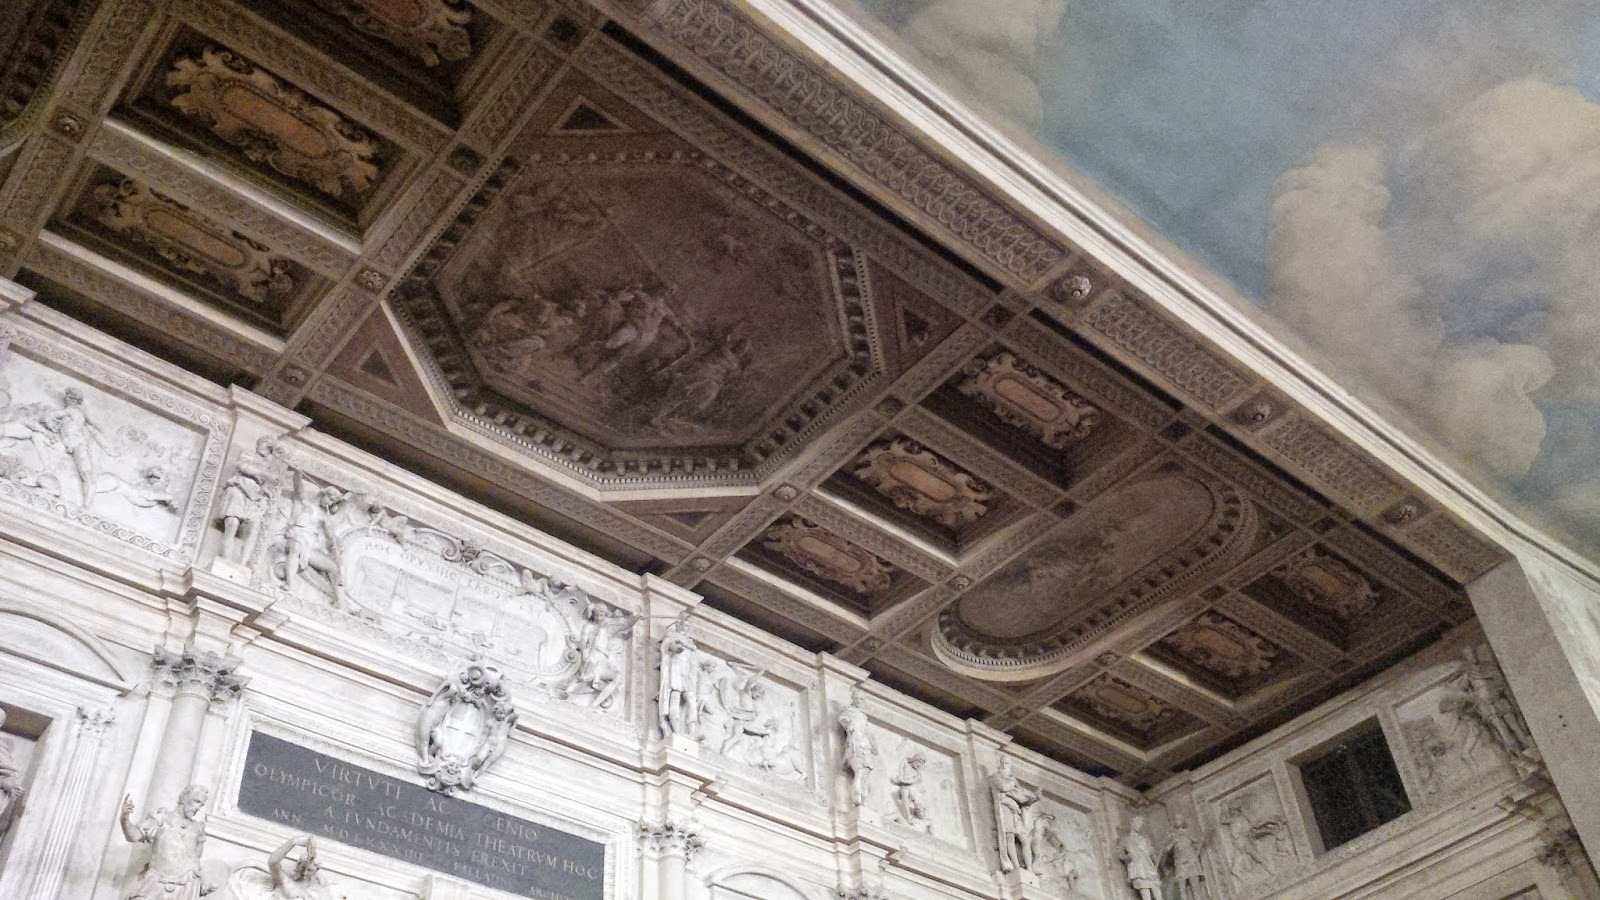 The ceiling of Teatro Olimpico in Vicenza